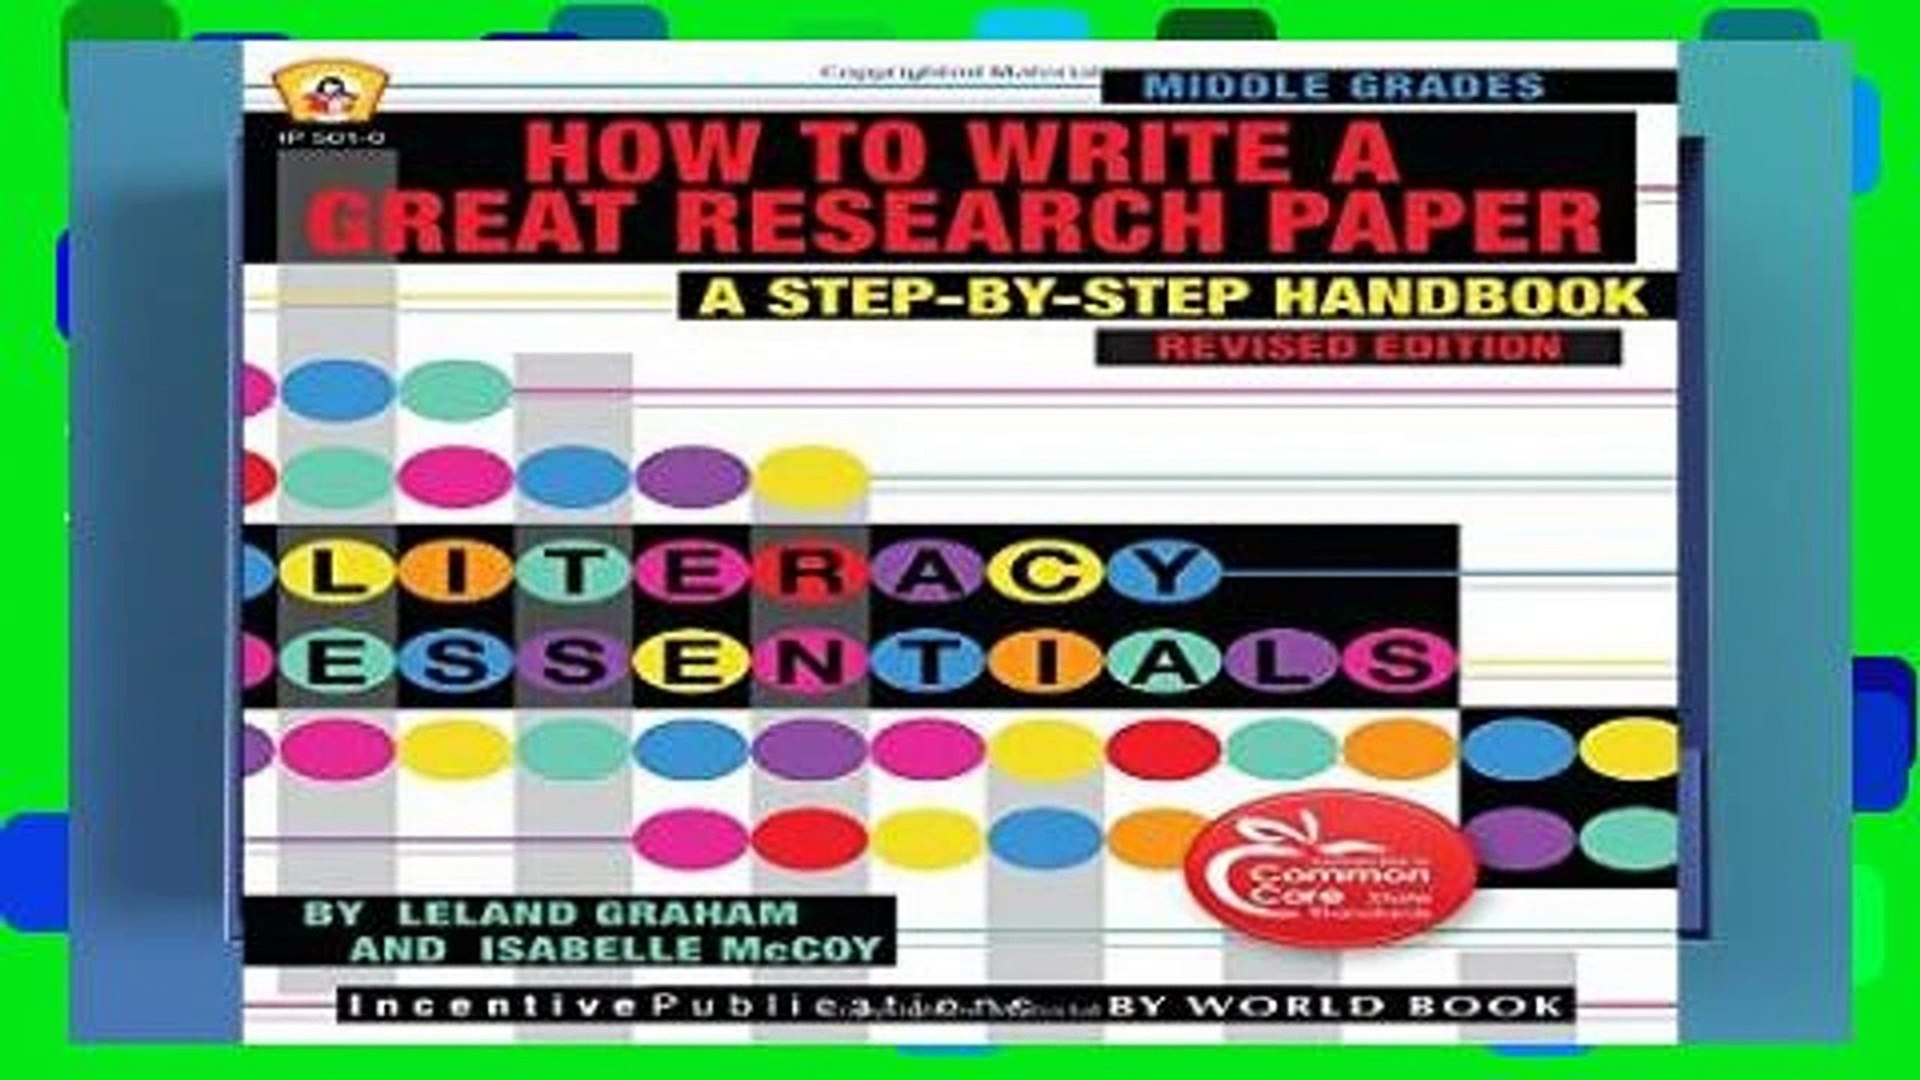 011 Research Paper How To Write Great Book X1080 Best A Good On Full